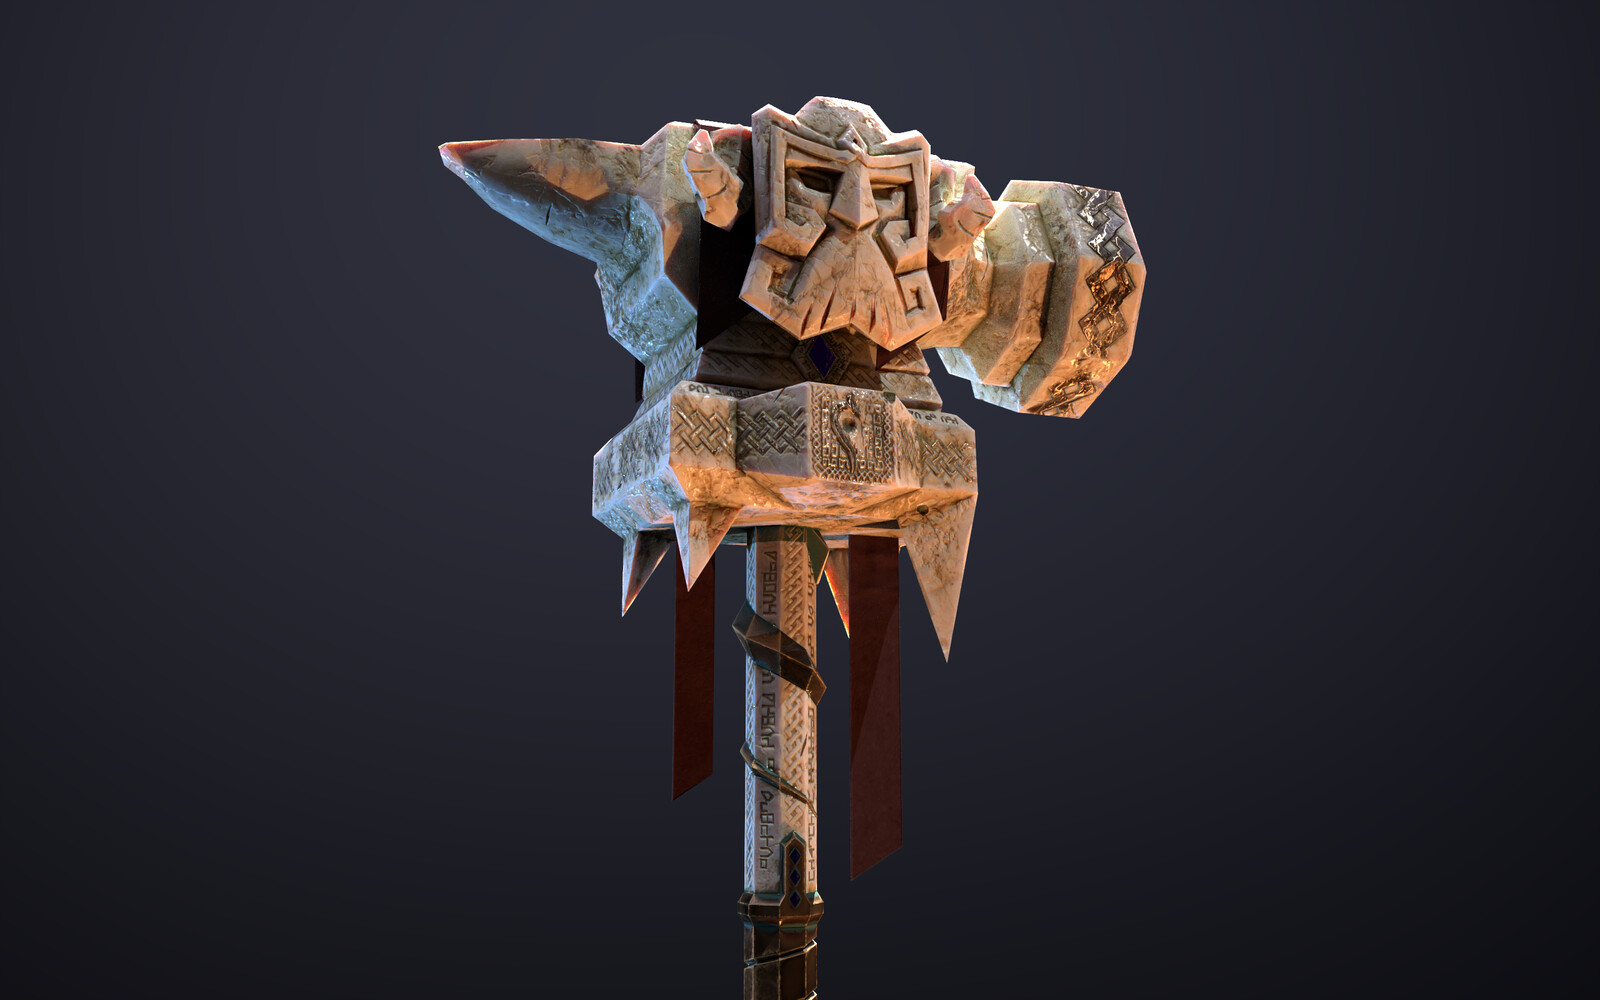 Dwarven Hammer: The Relic of Burkhet